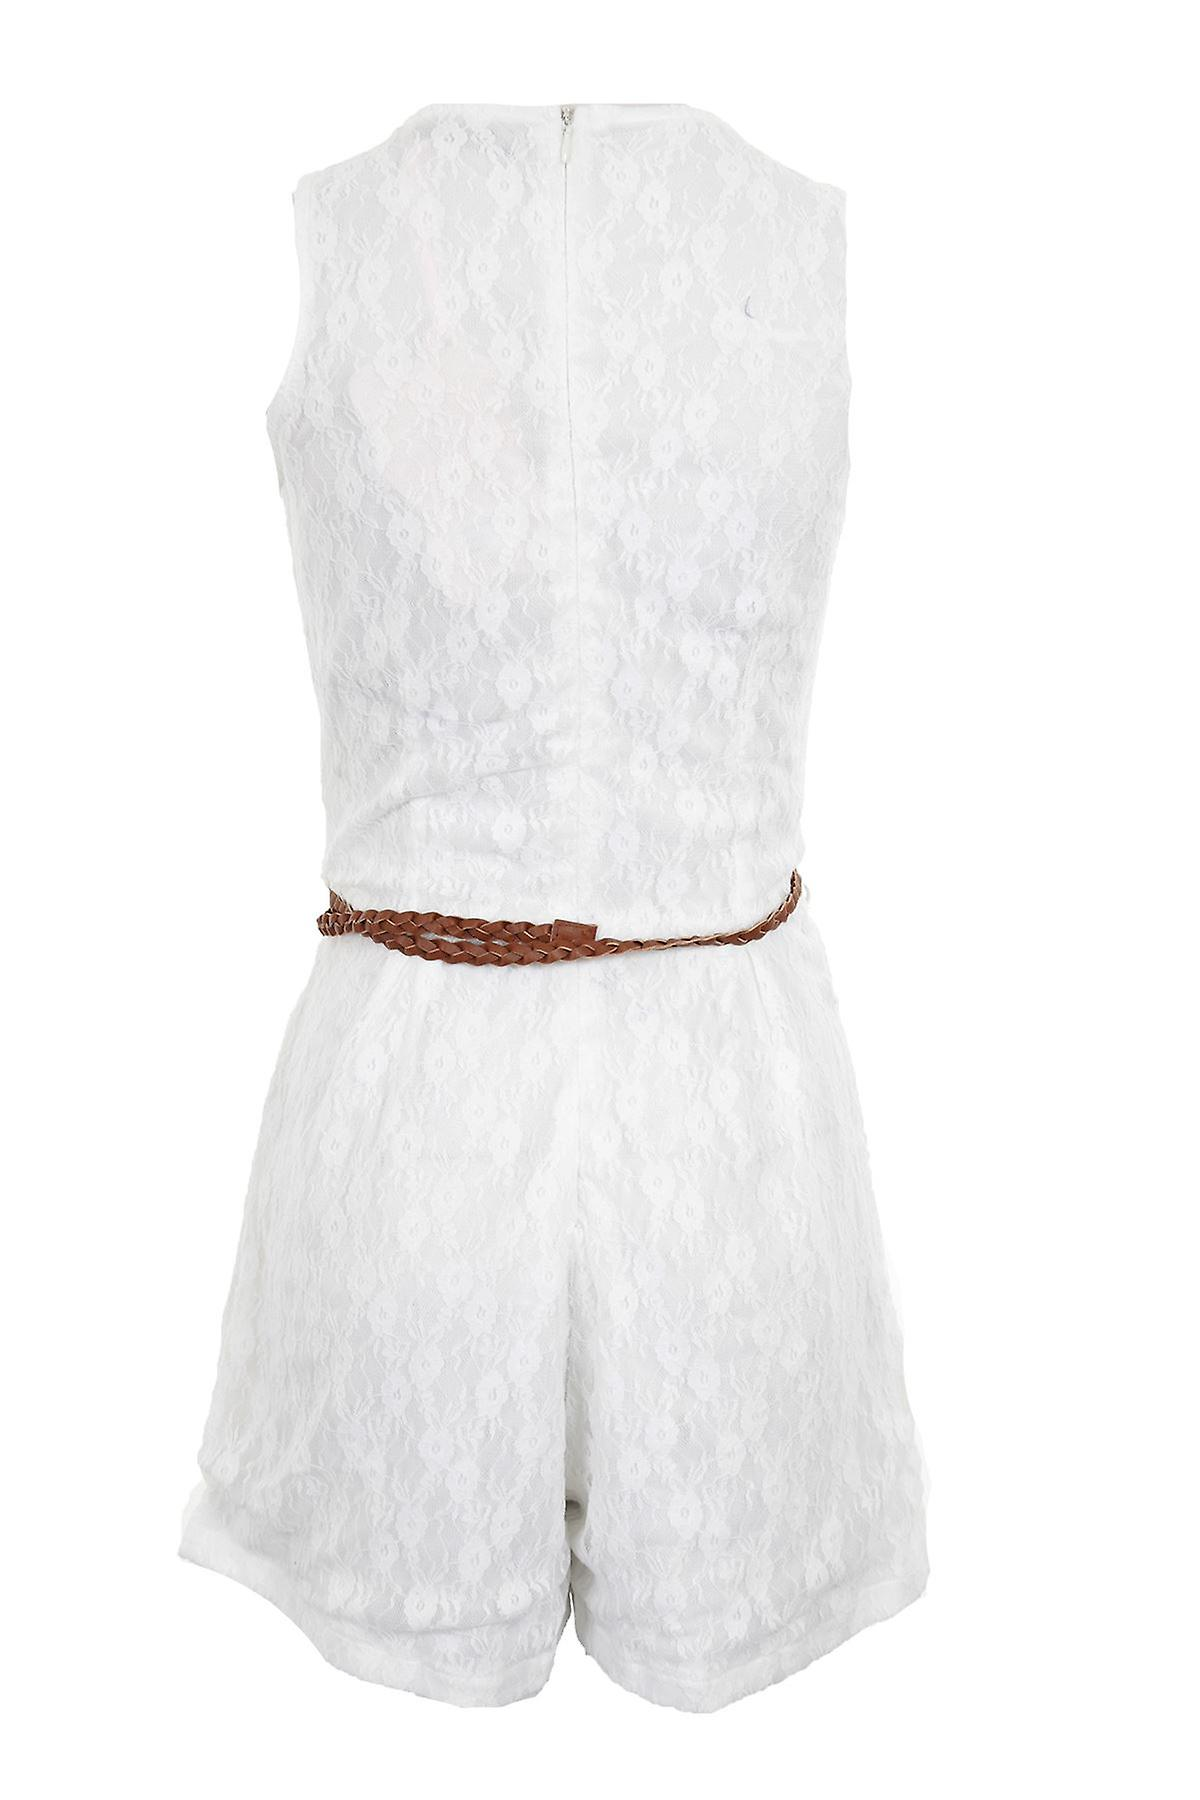 Ladies Sleeveless Cream Black Lace Lined Belted Dress Zip Belt Women's Playsuit